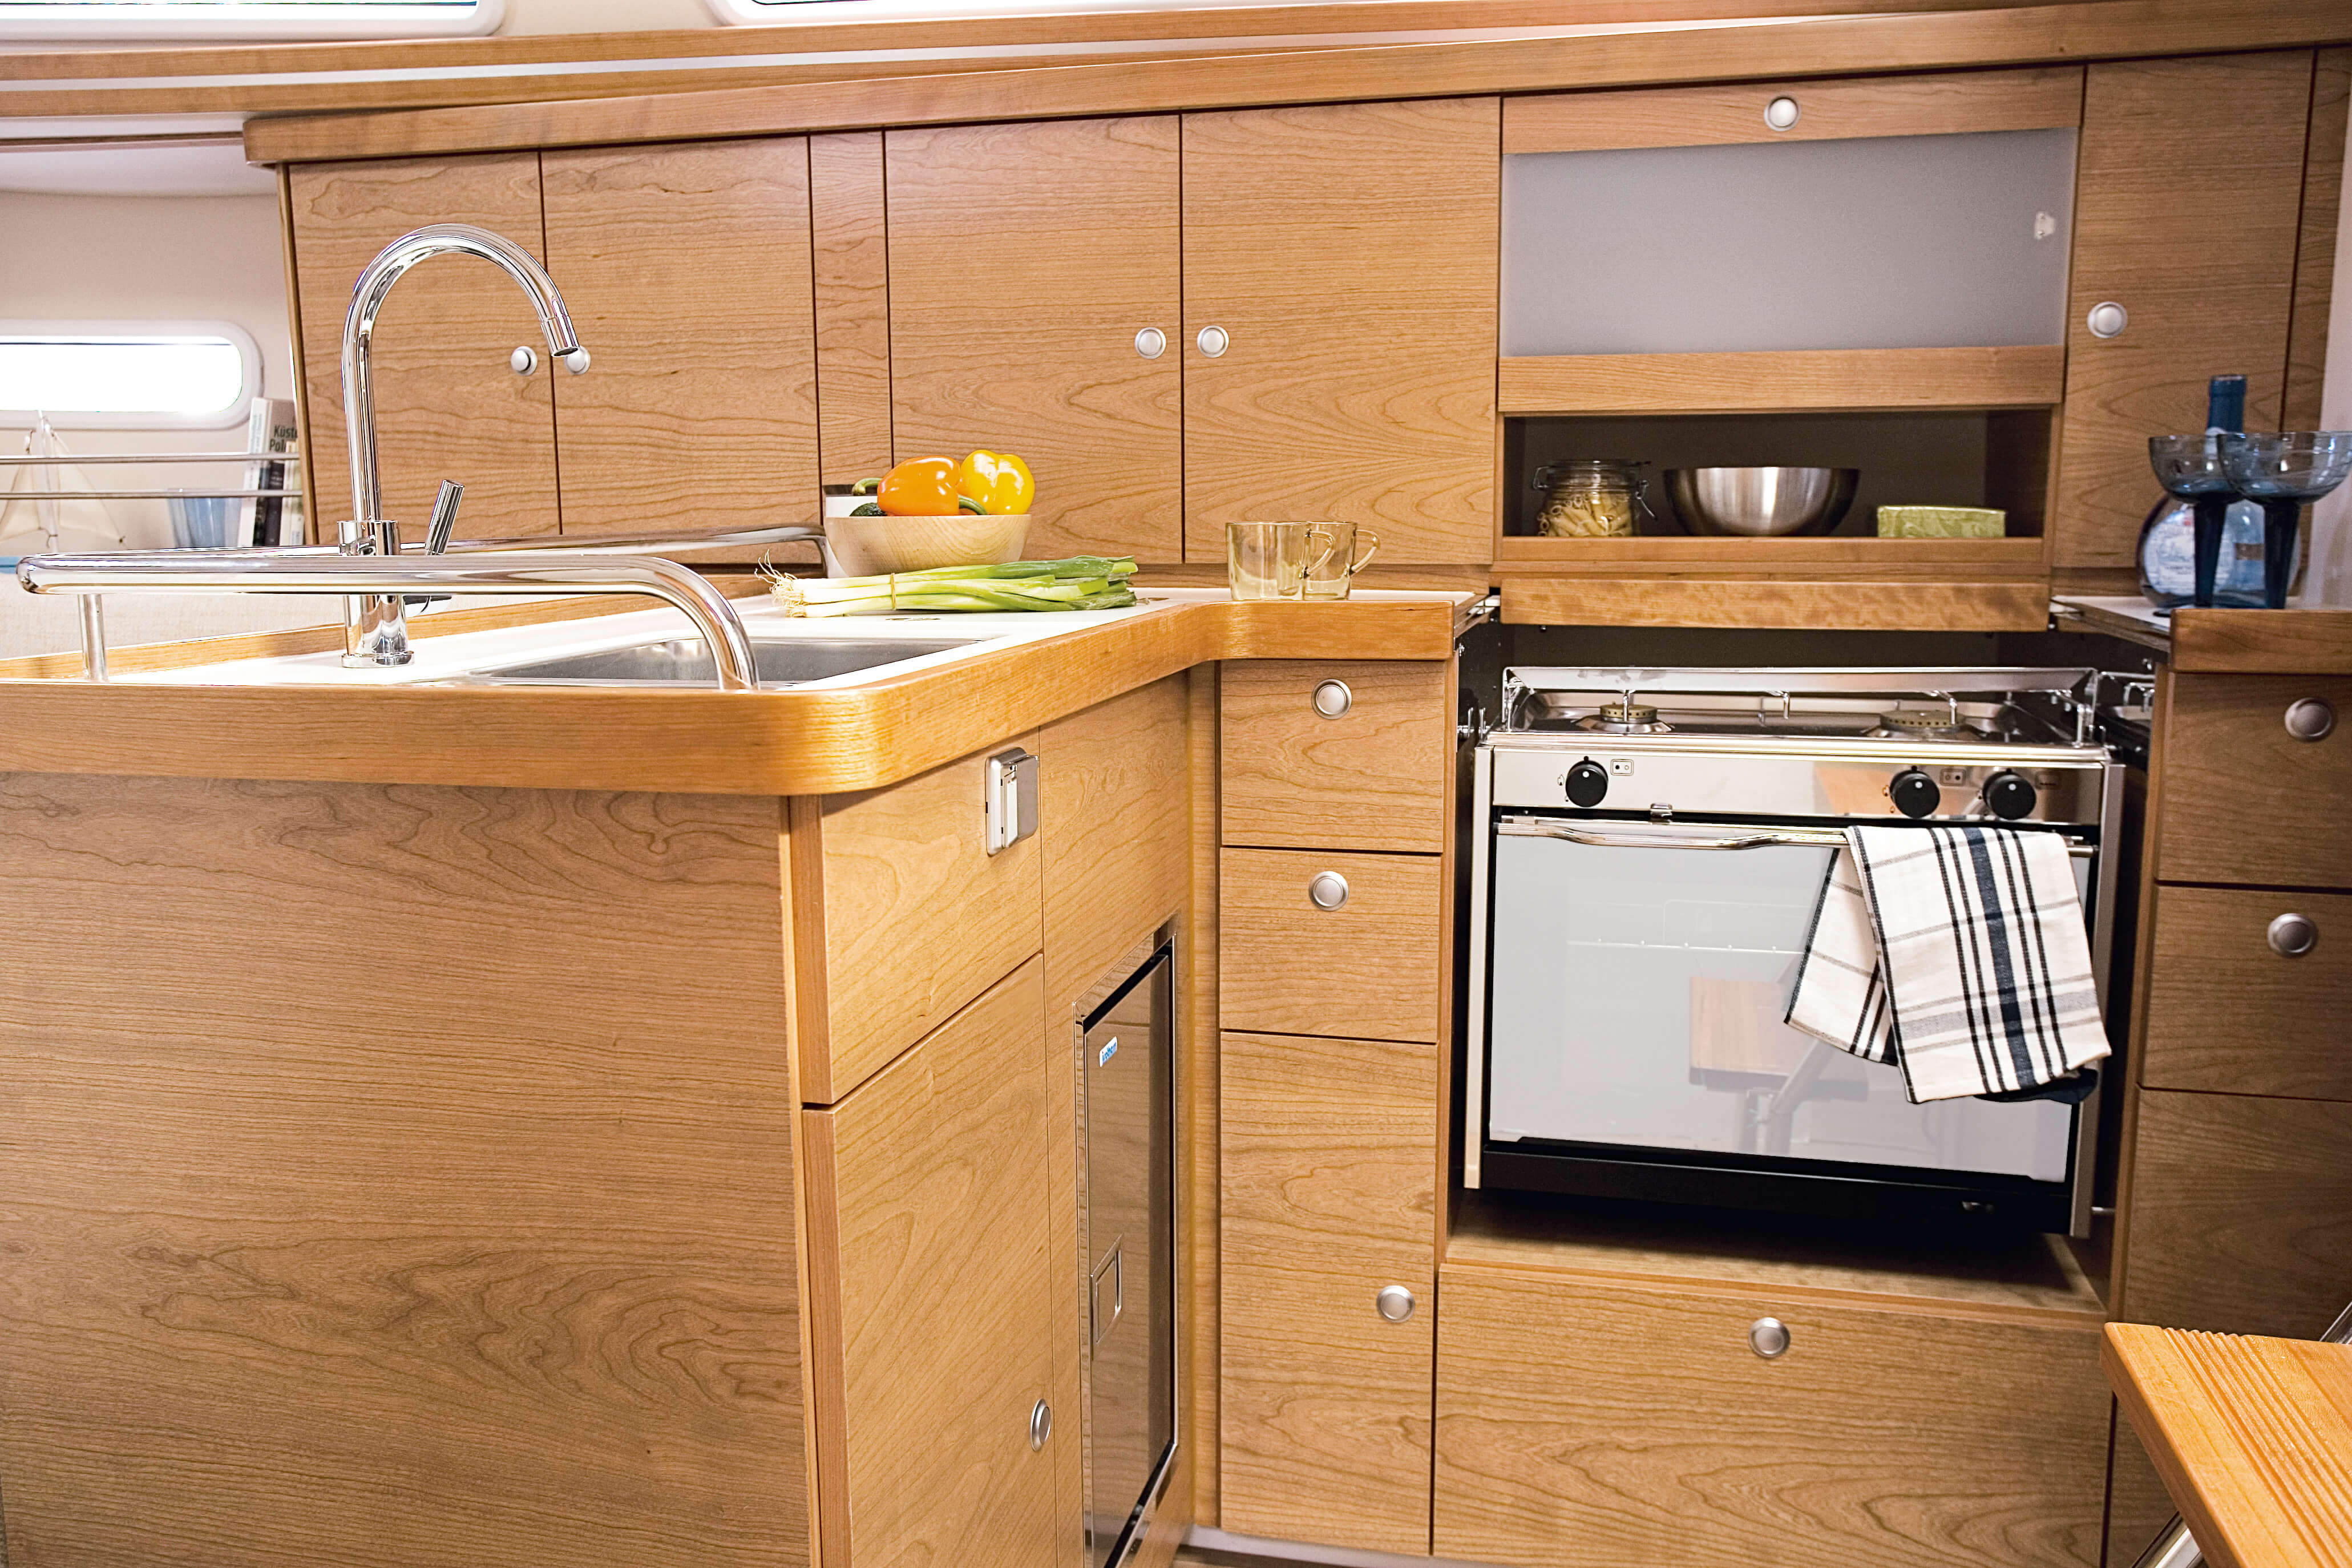 Hanse 370 Interior view pantry | Hanse